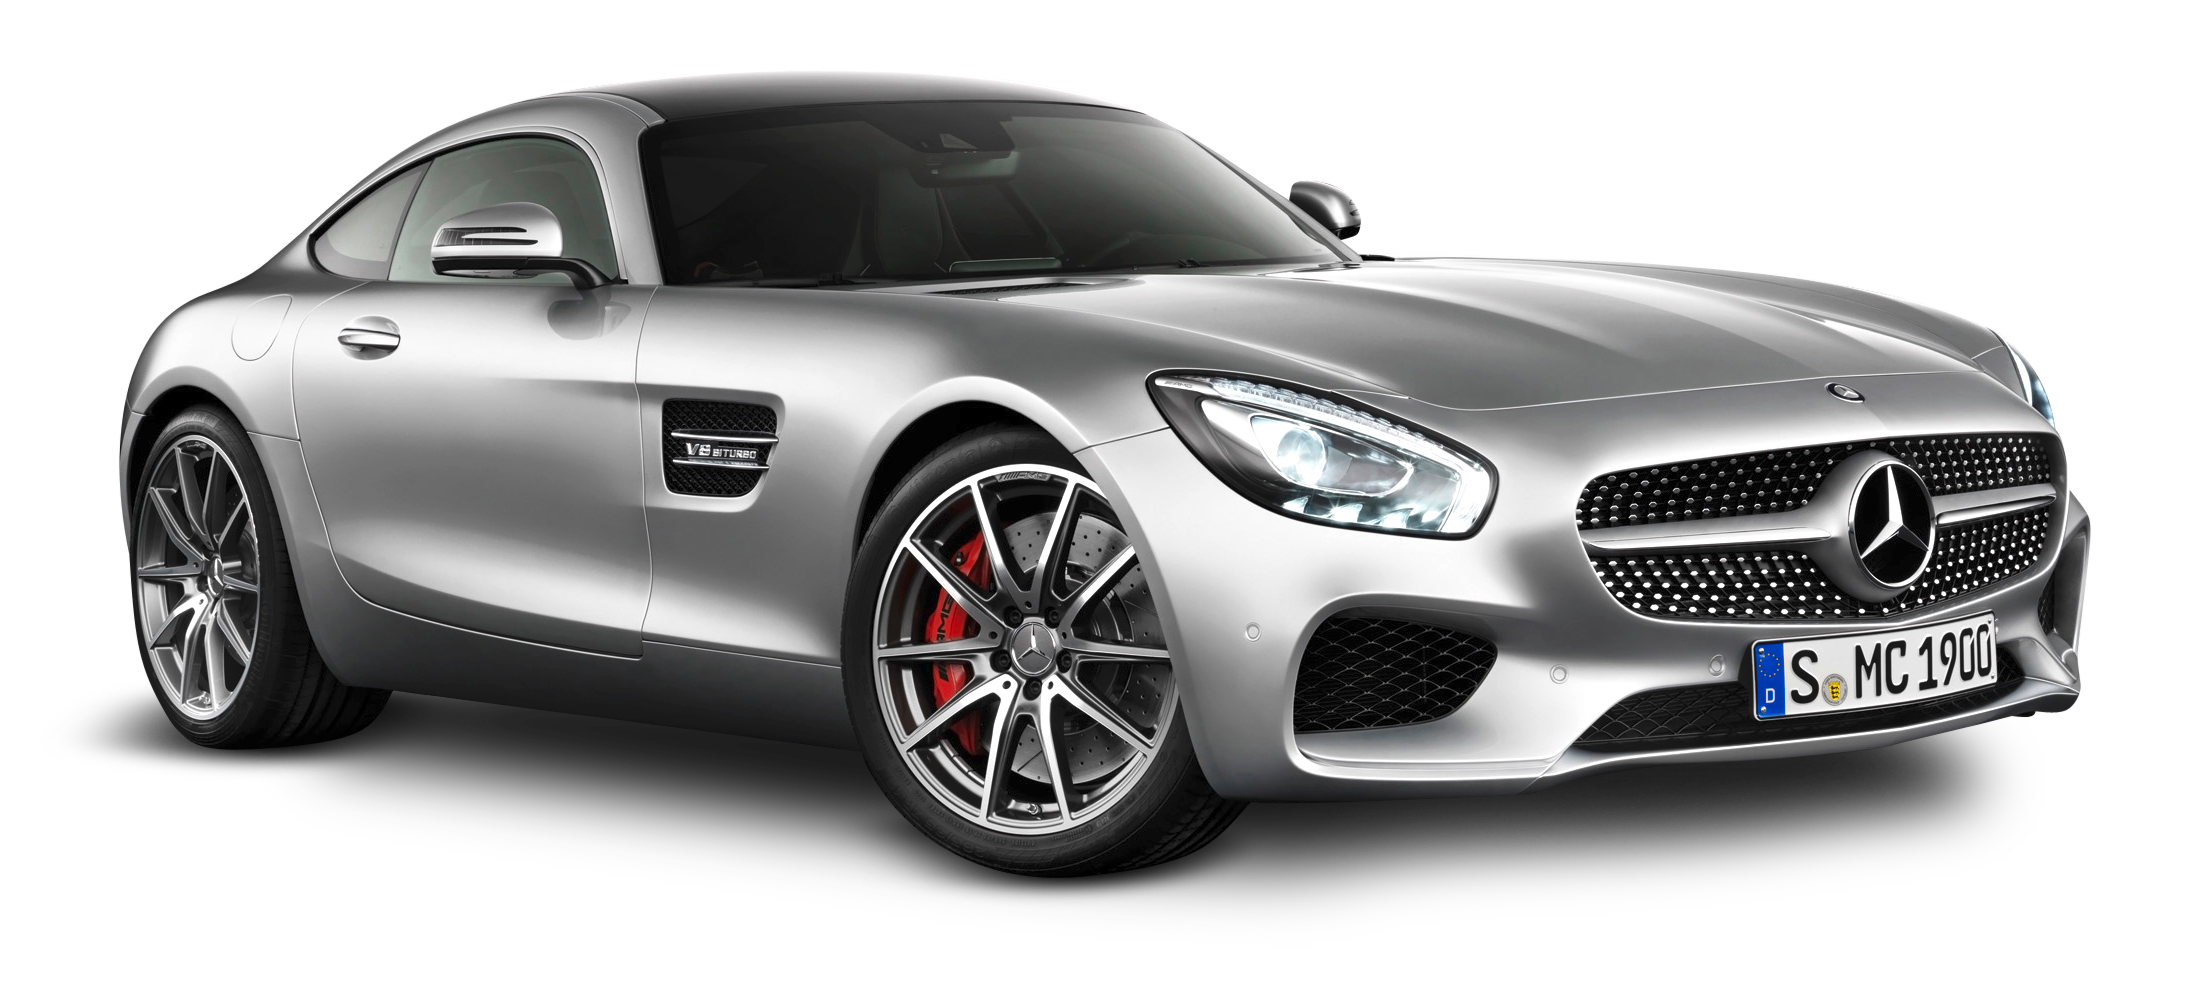 Car PNG Images Transparent Free Download.